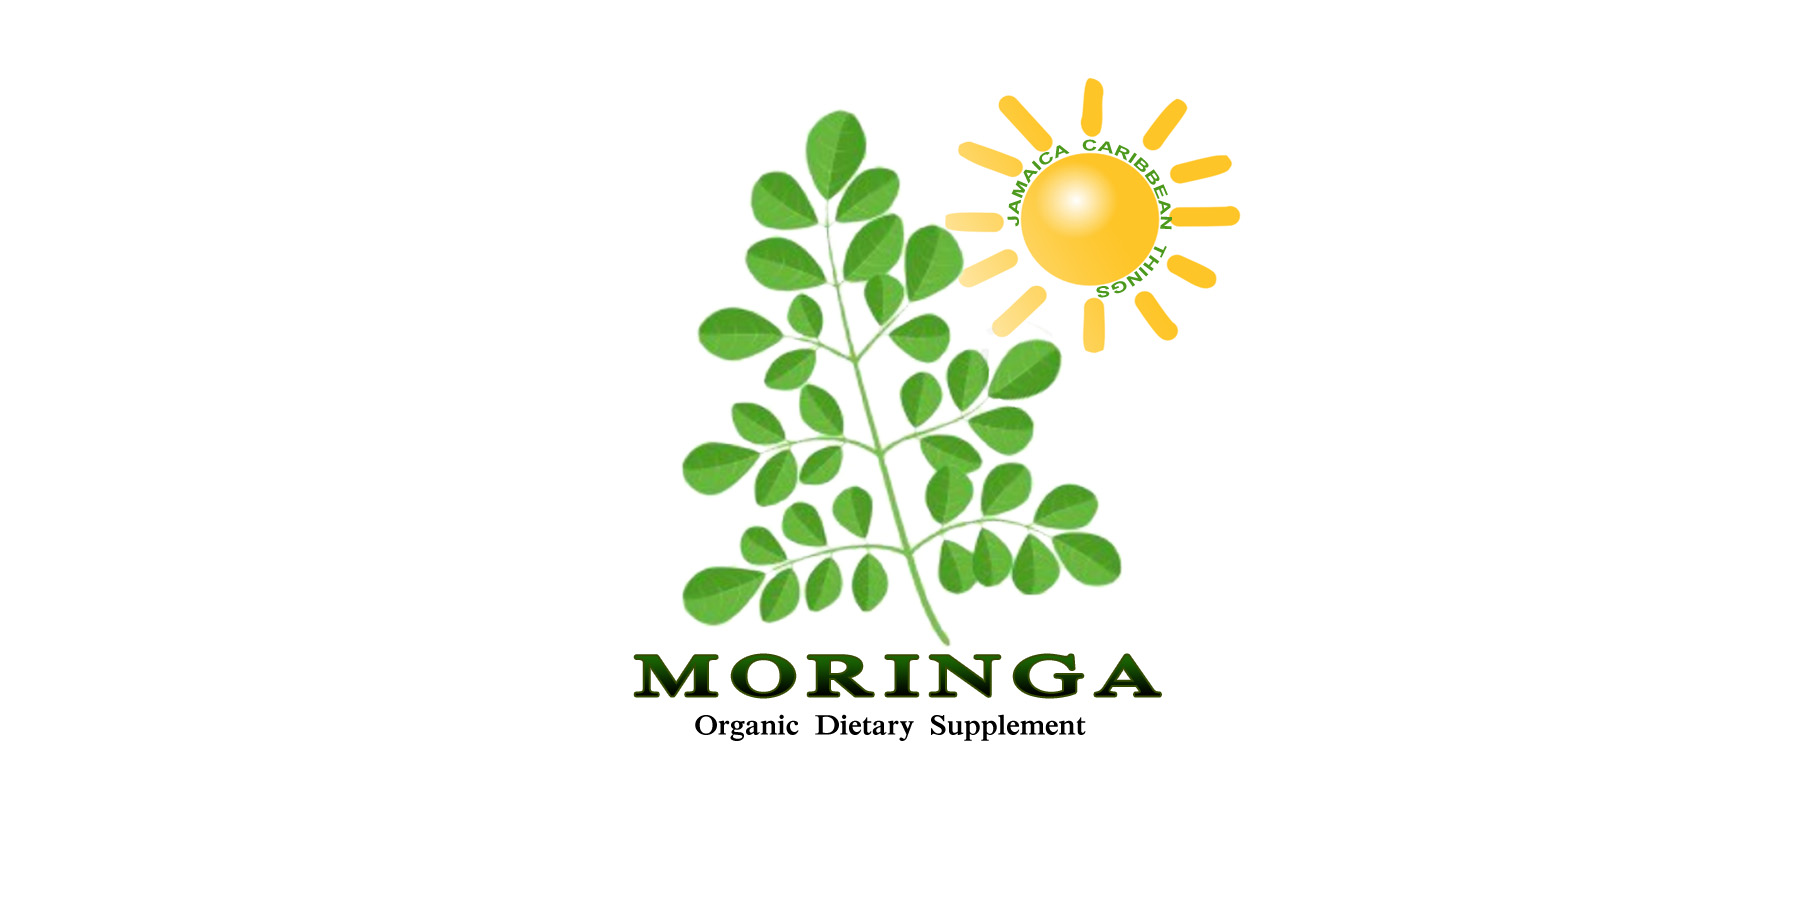 Moringa The Organic Alternative